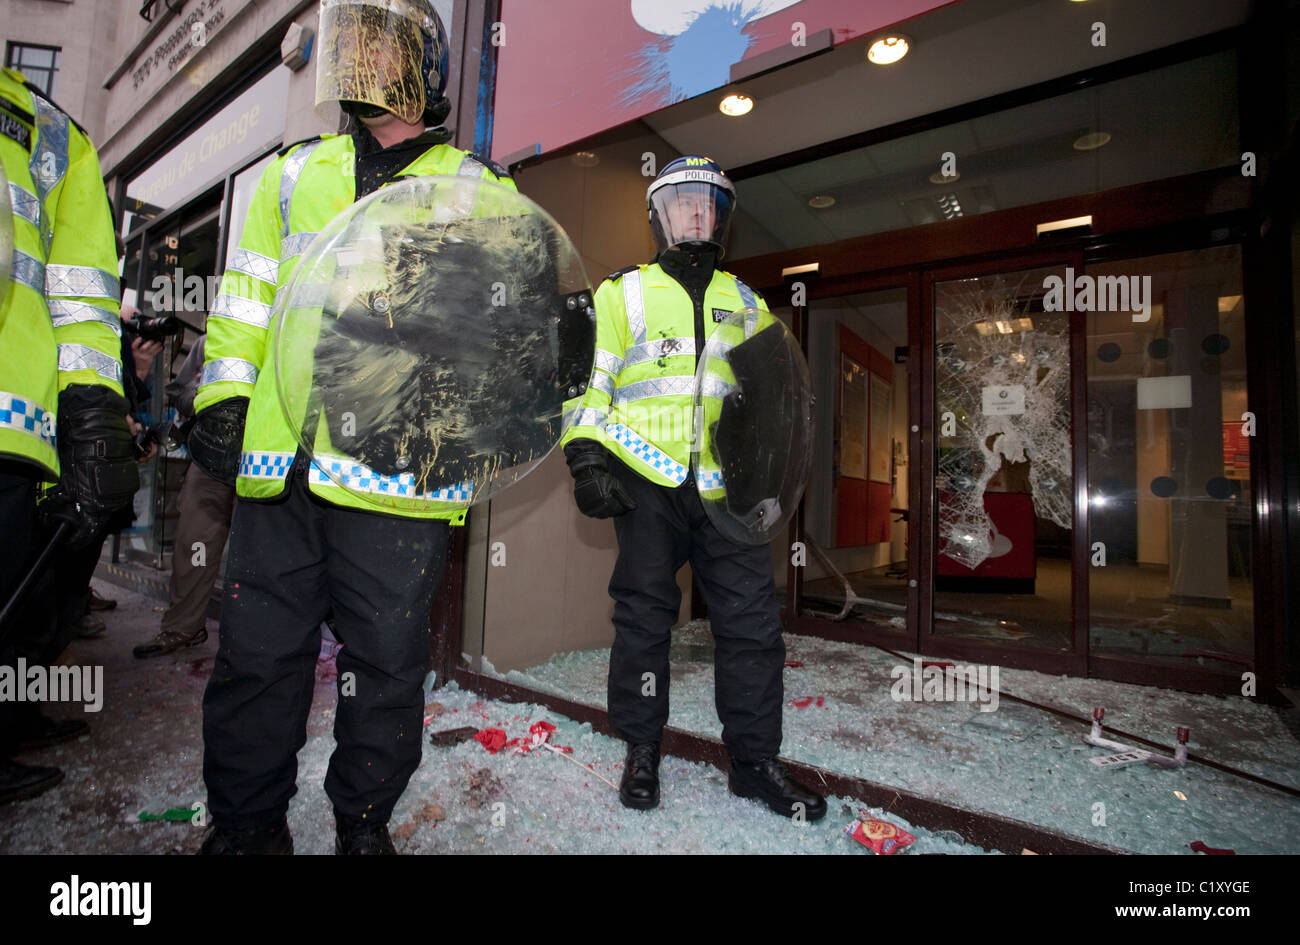 Anti-Cuts march 26/03/2011, London, UK Riot Police outside a ransacked branch of Santander on Piccadilly during - Stock Image